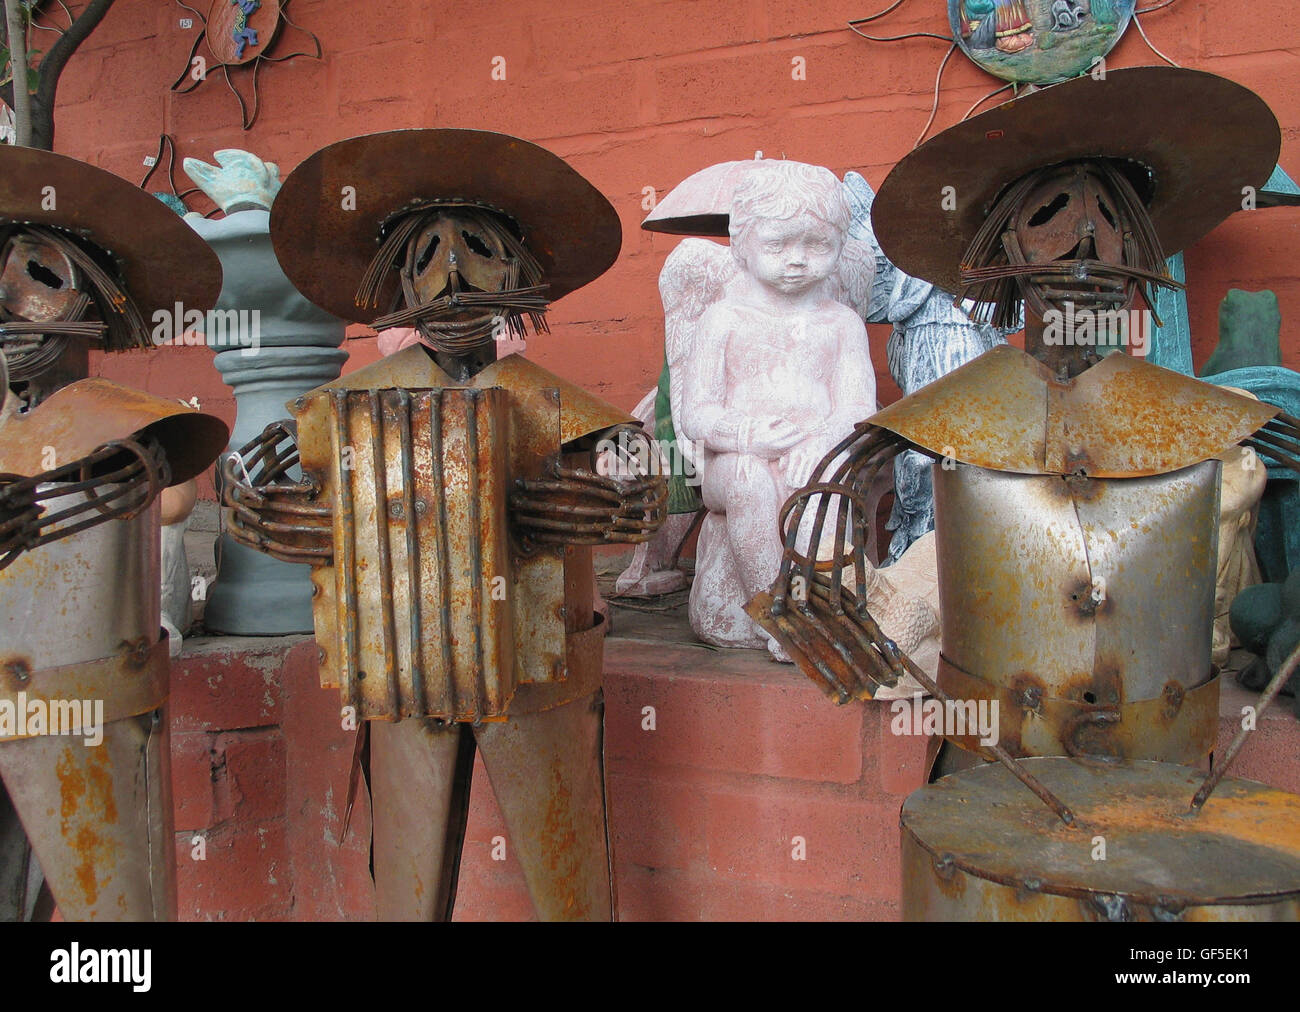 Metal and ceramic sculptures and works of art are displayed at an open market in Tucson, Arizona, USA. - Stock Image